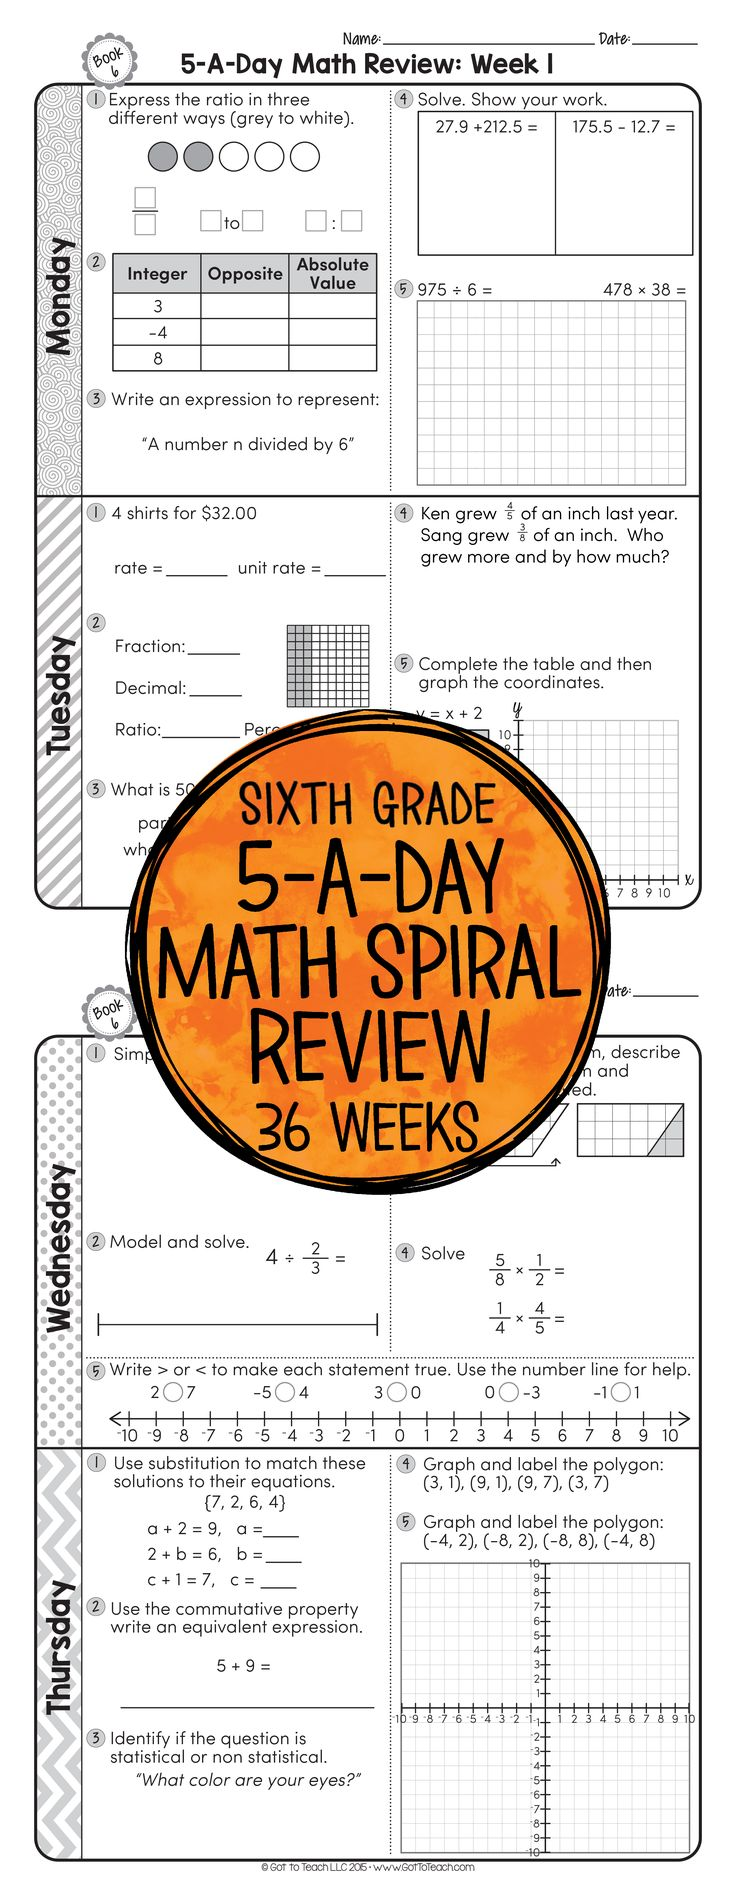 36 weeks of daily Common Core math review for sixth grade! Preview and Review important 6th grade math concepts all year long! Perfect for homework, morning work, or test prep! 5-A-Day: 6 tasks a day, M-Th. CCSS M.6 Available for 3rd - 6th grades! $